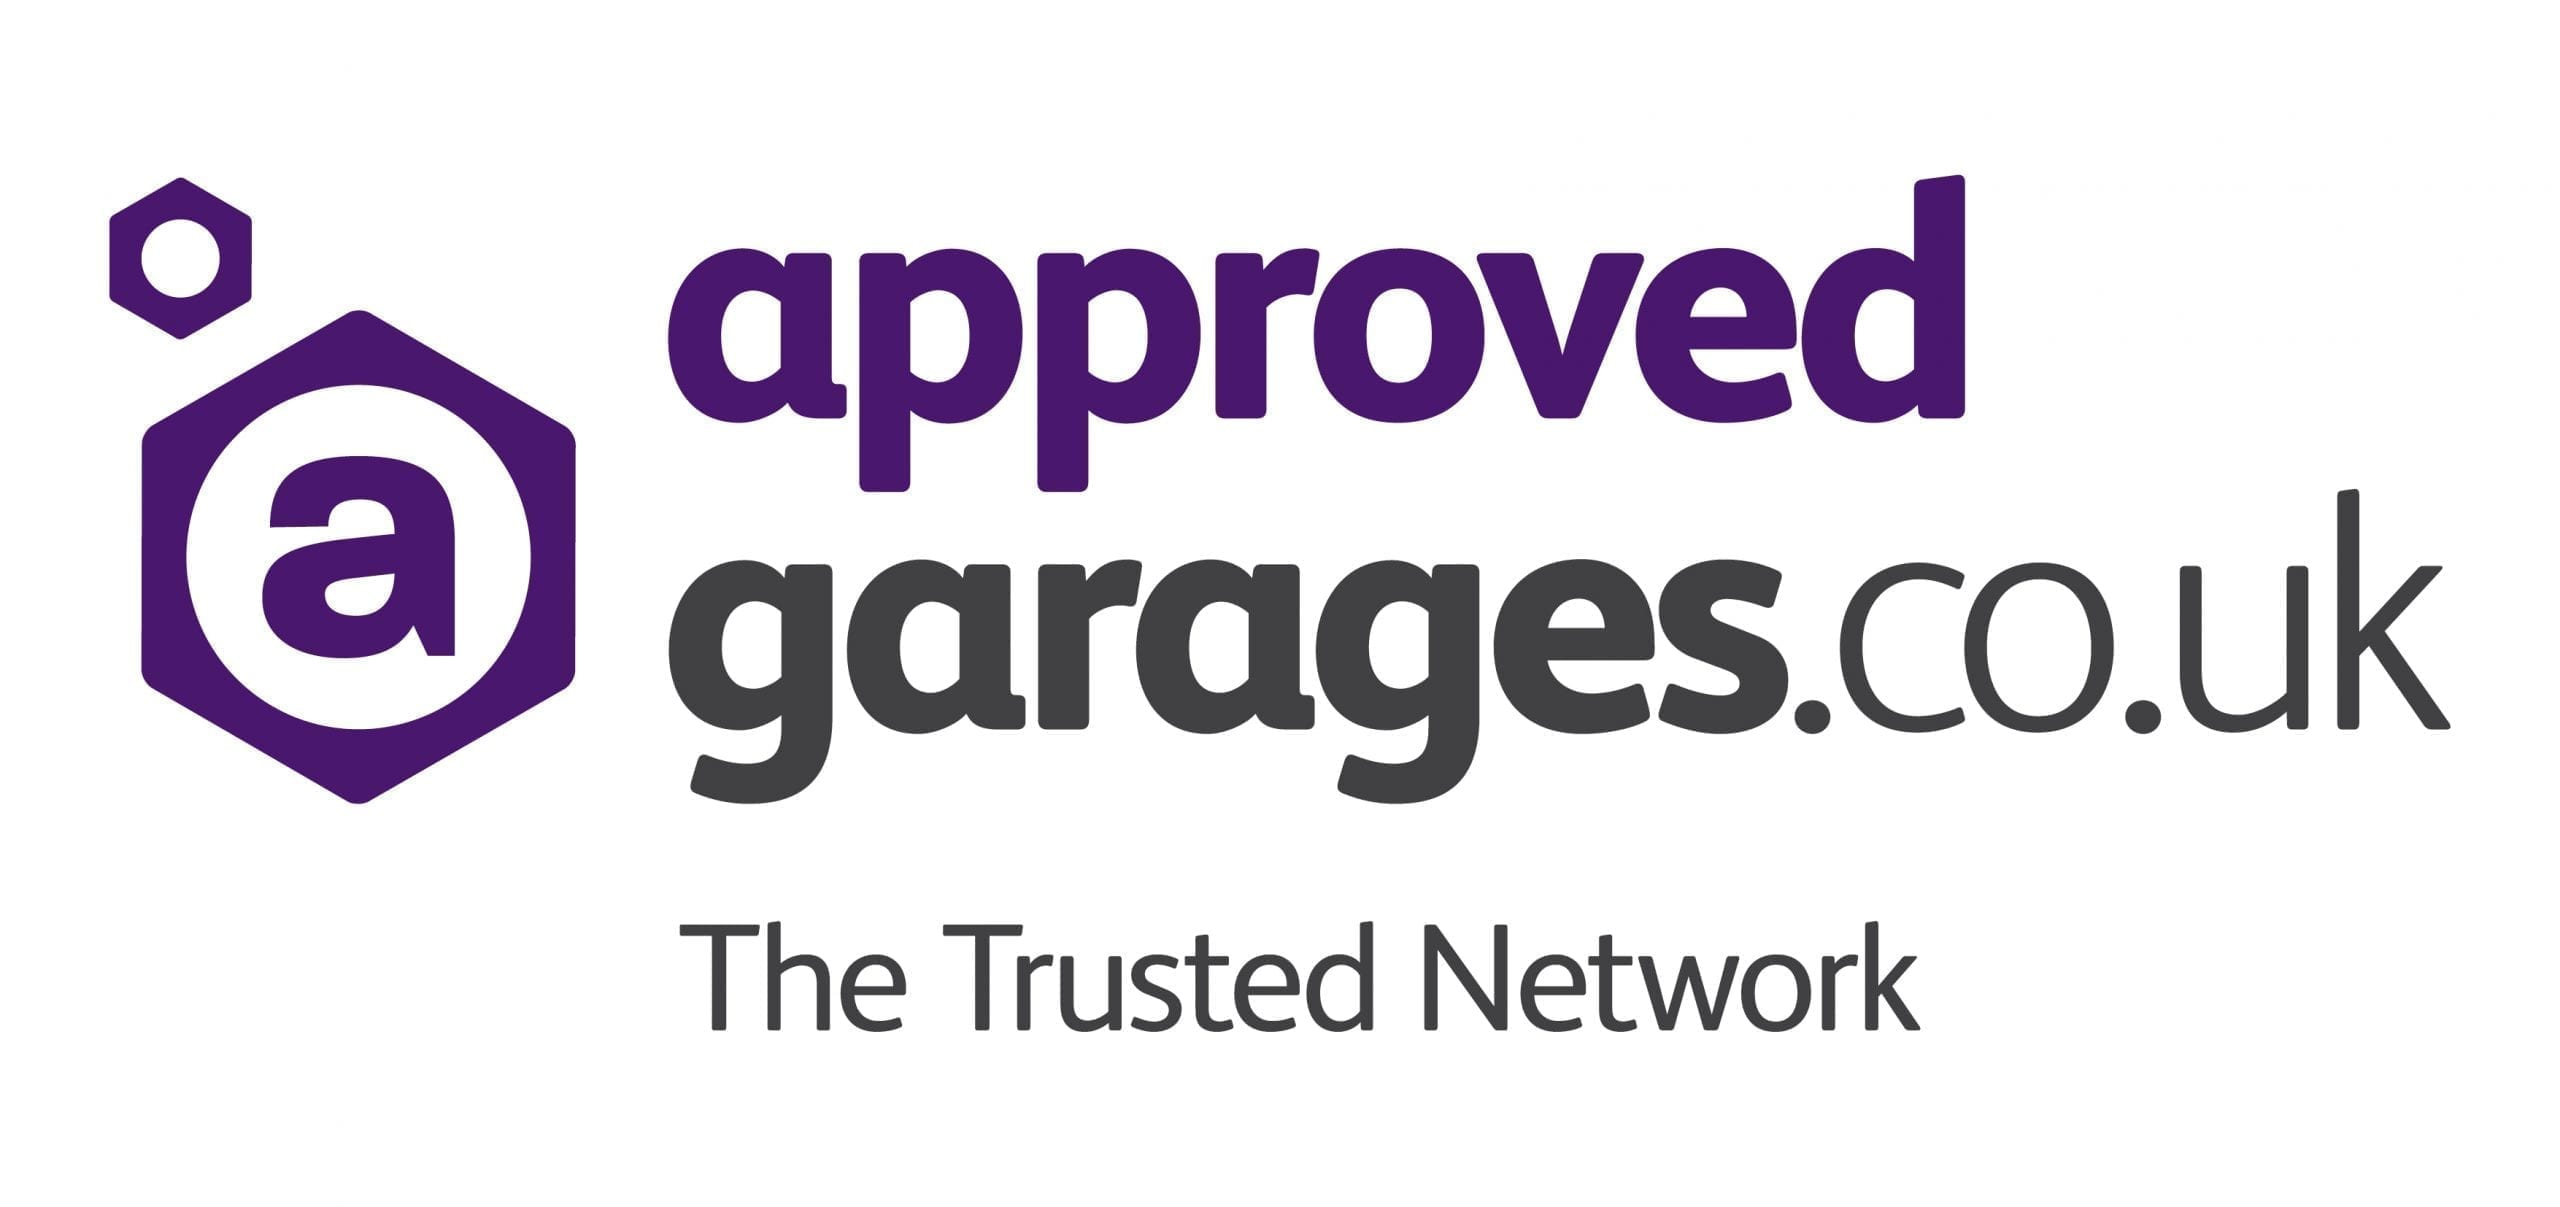 The Approved Garages